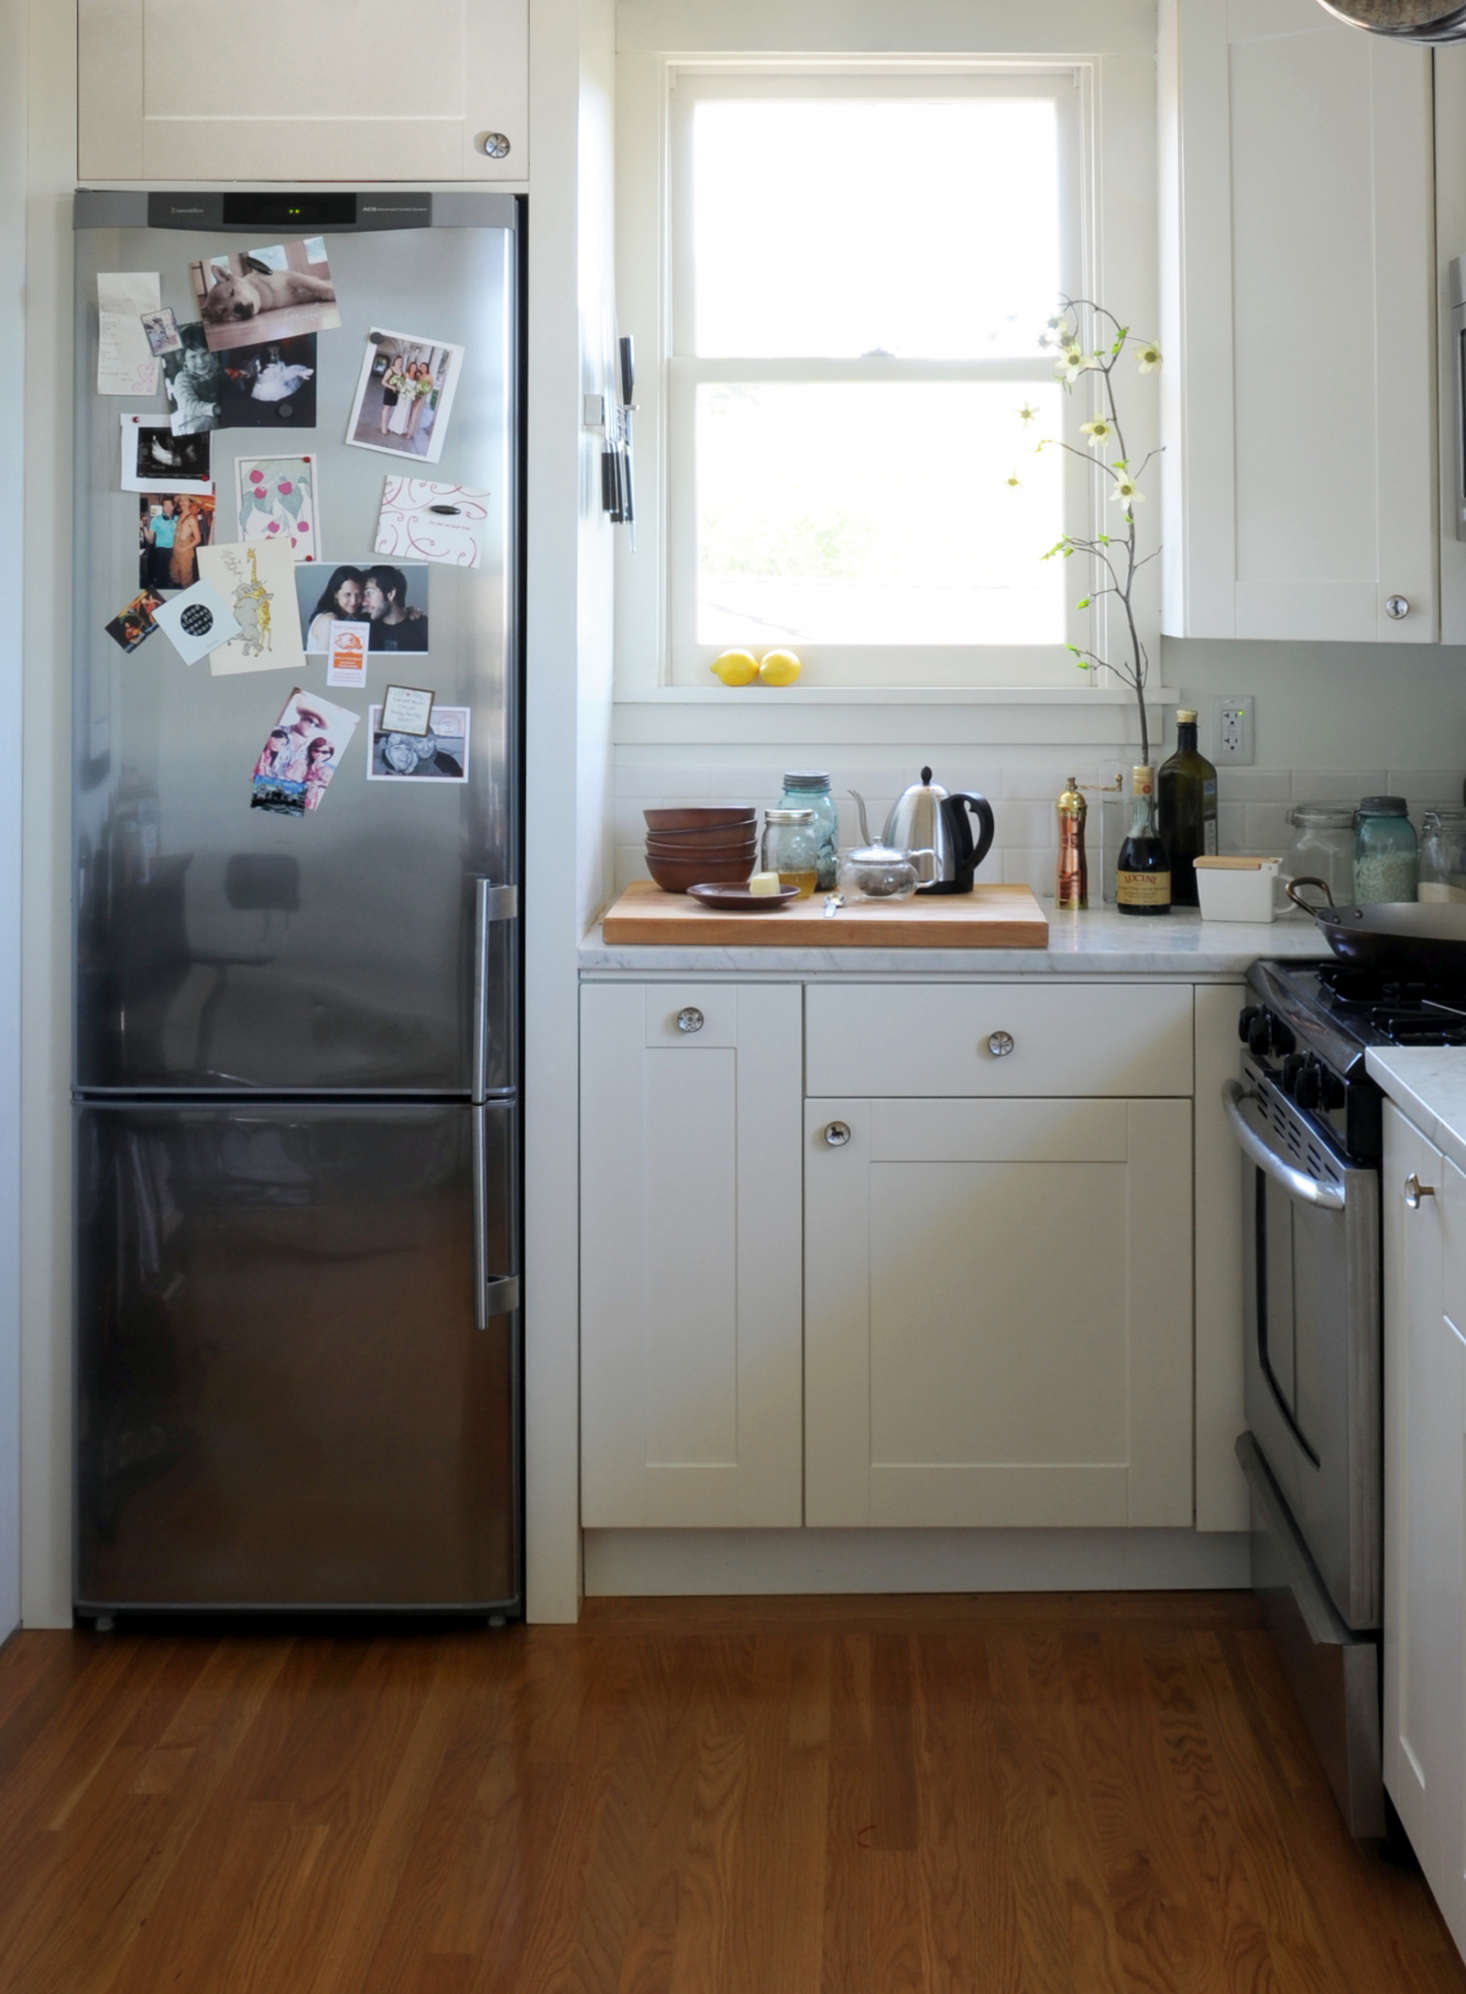 Remodelista & 14 Tricks for Maximizing Space in a Tiny Kitchen Urban Edition ...